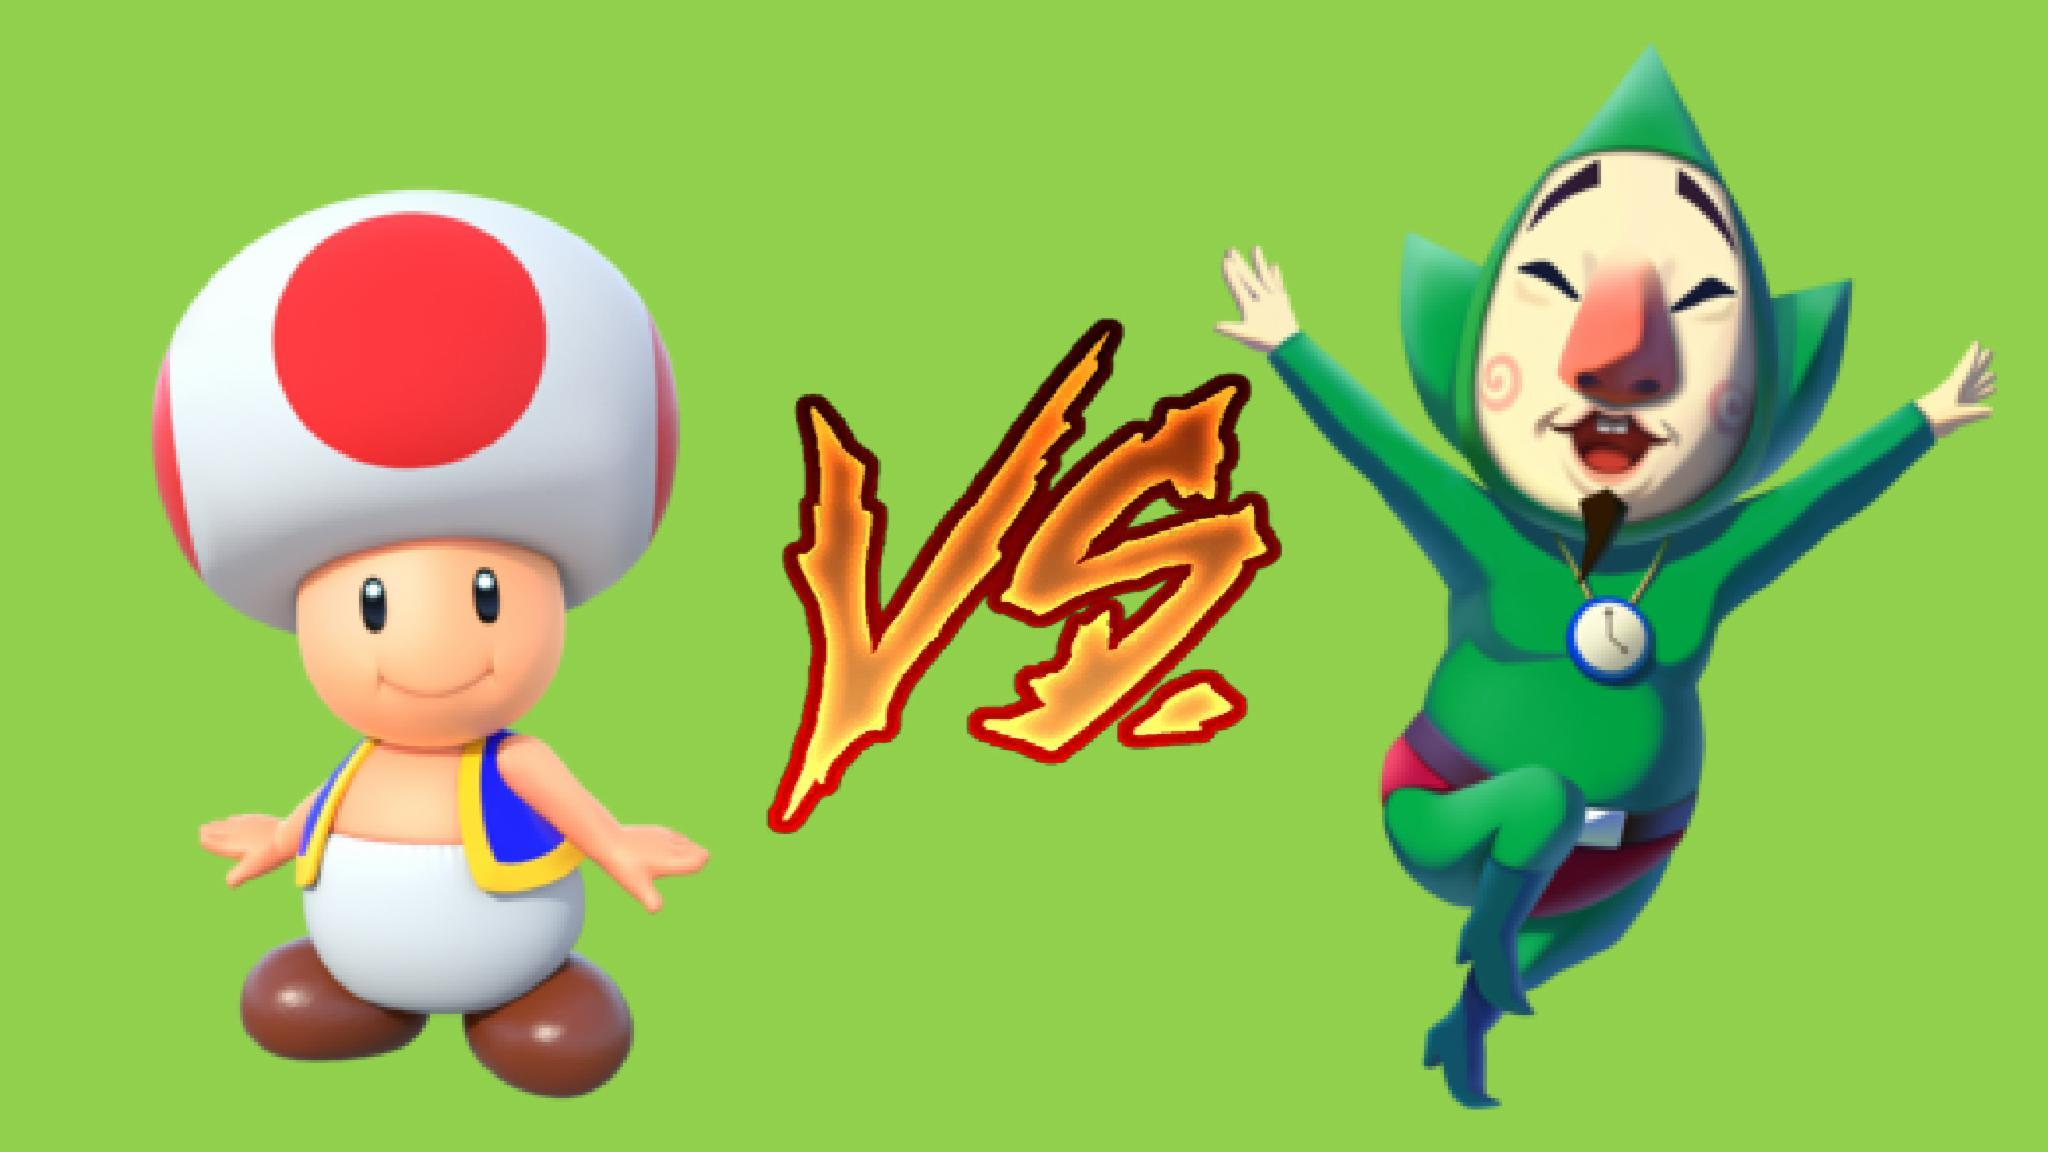 Toad VS Tingle